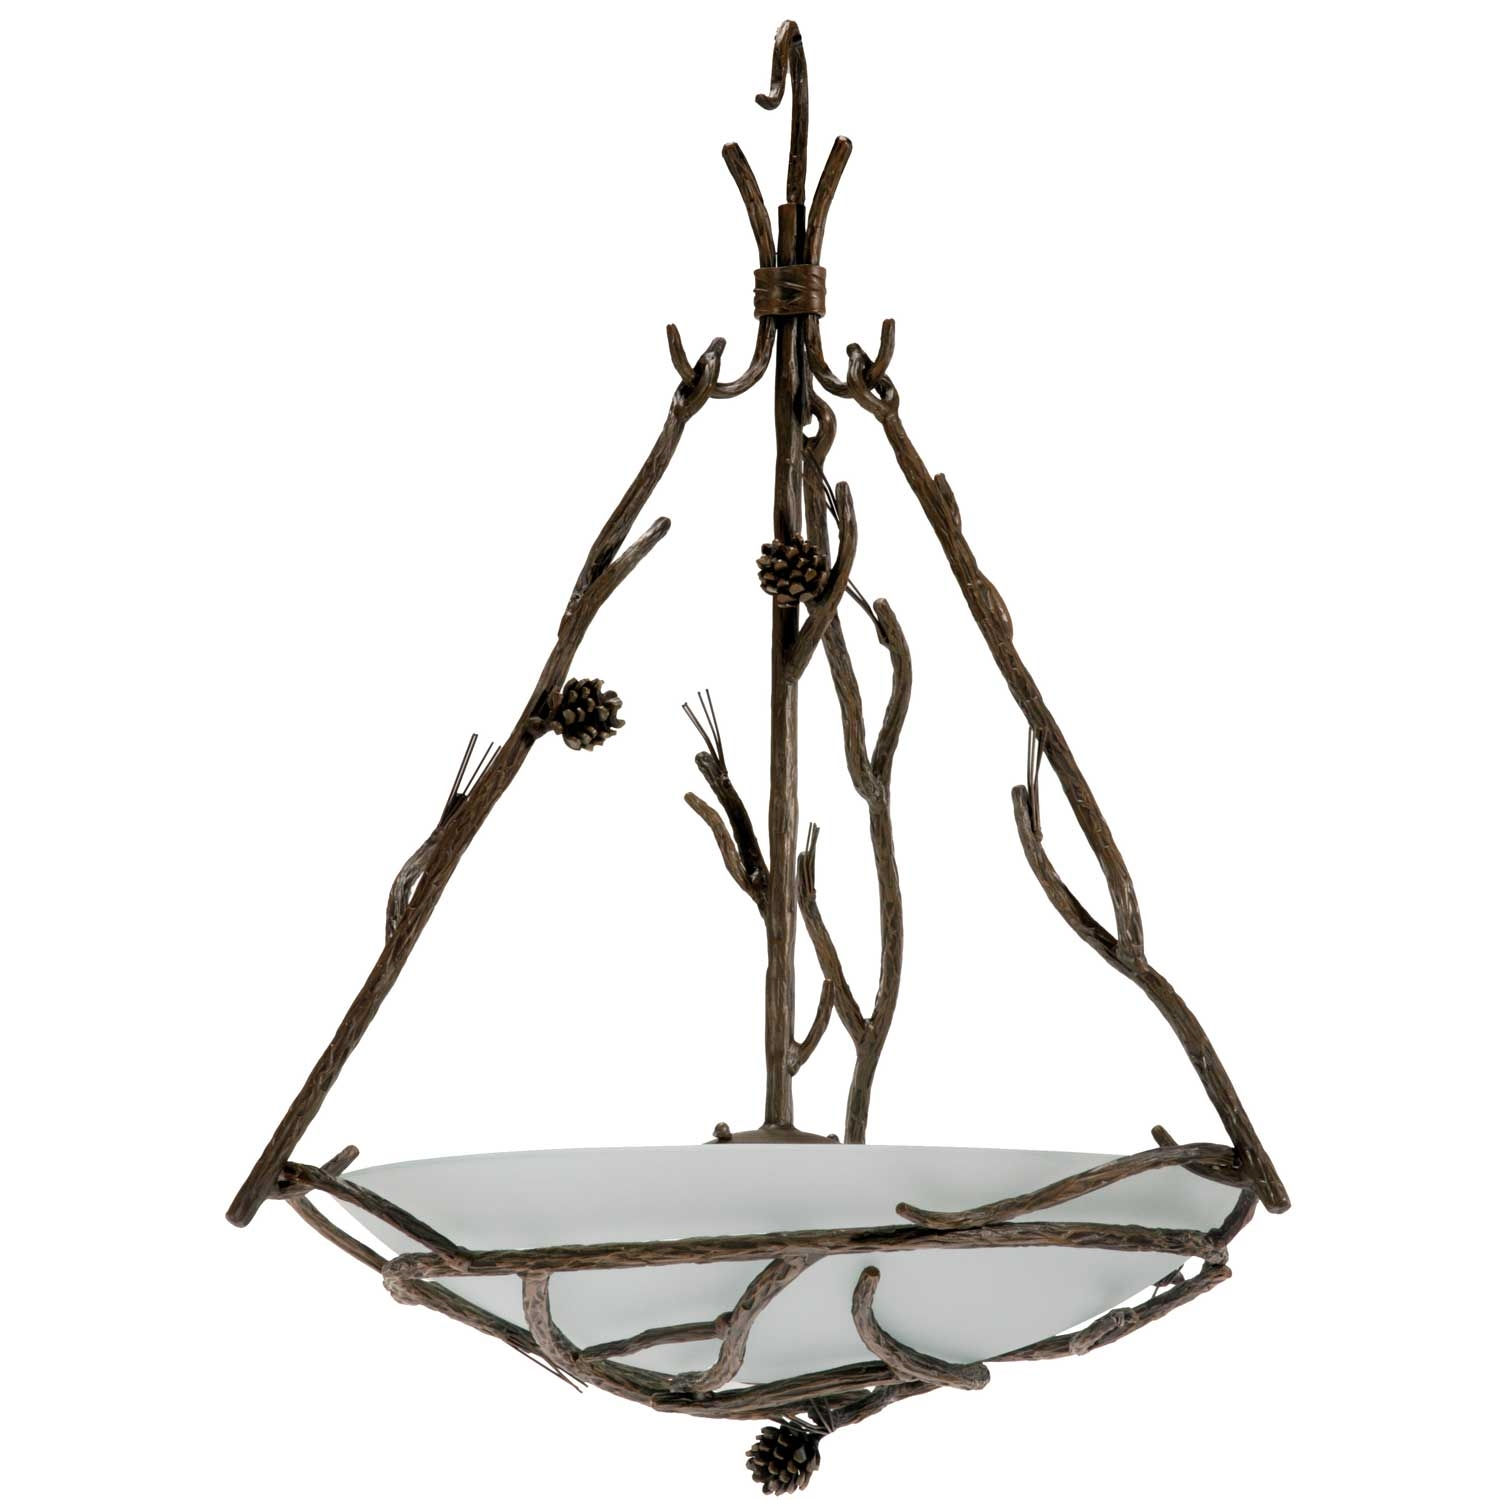 Rustic Pine Wrought Iron Globe Chandelier